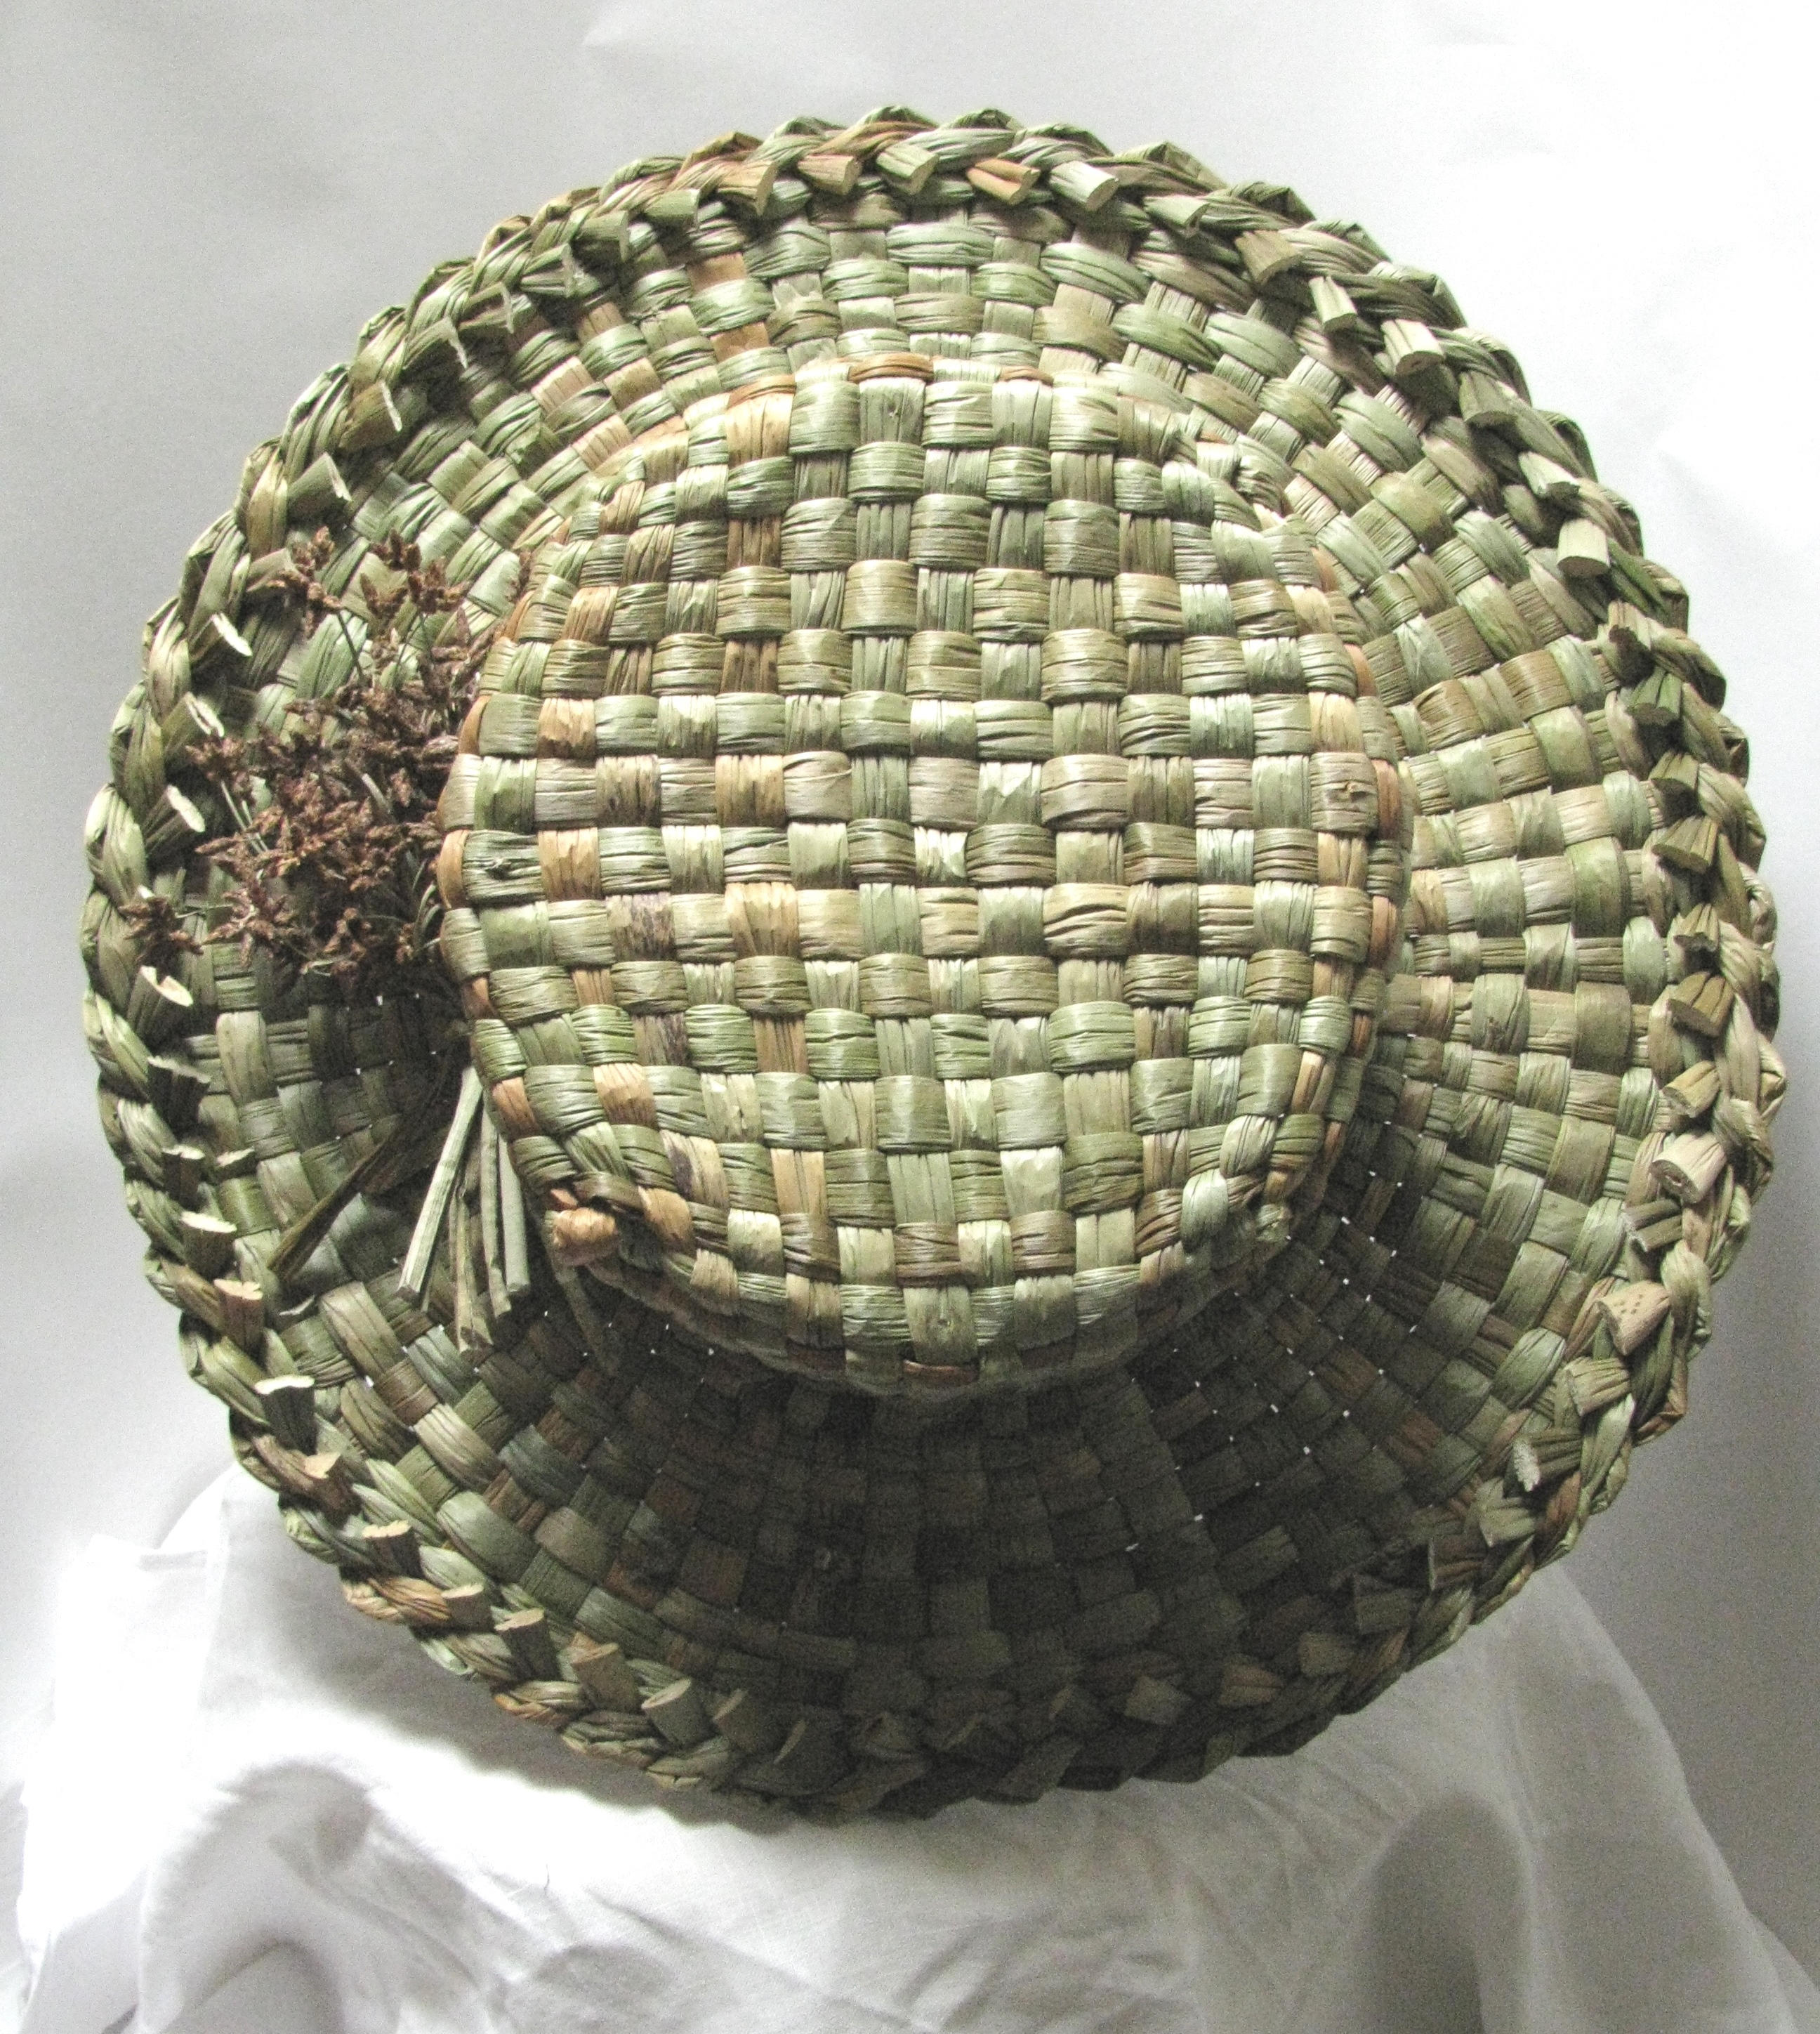 Soft Basketry Rush Workshop in Cumbria